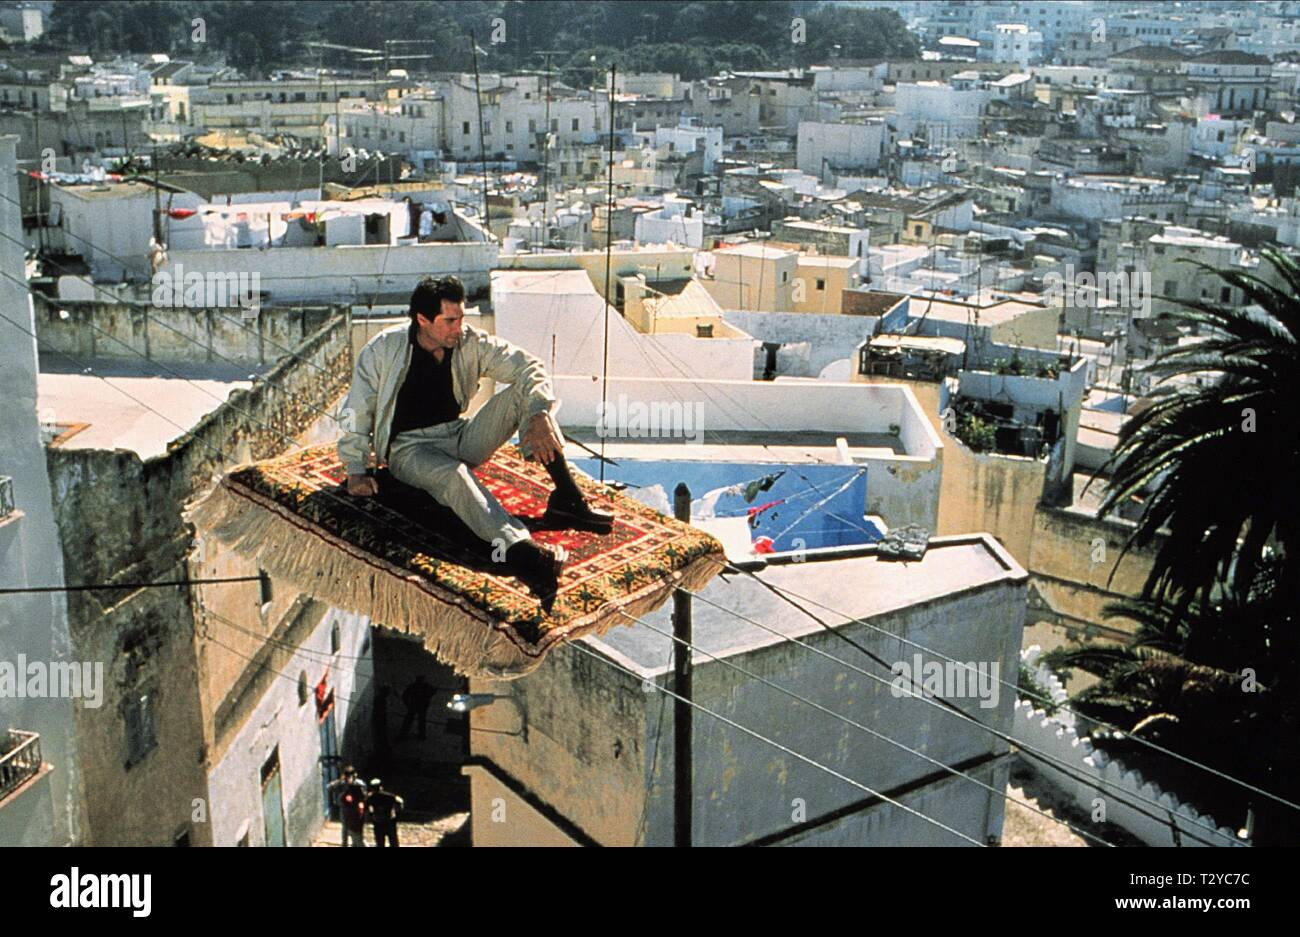 THE LIVING DAYLIGHTS, TIMOTHY DALTON, 1987 - Stock Image